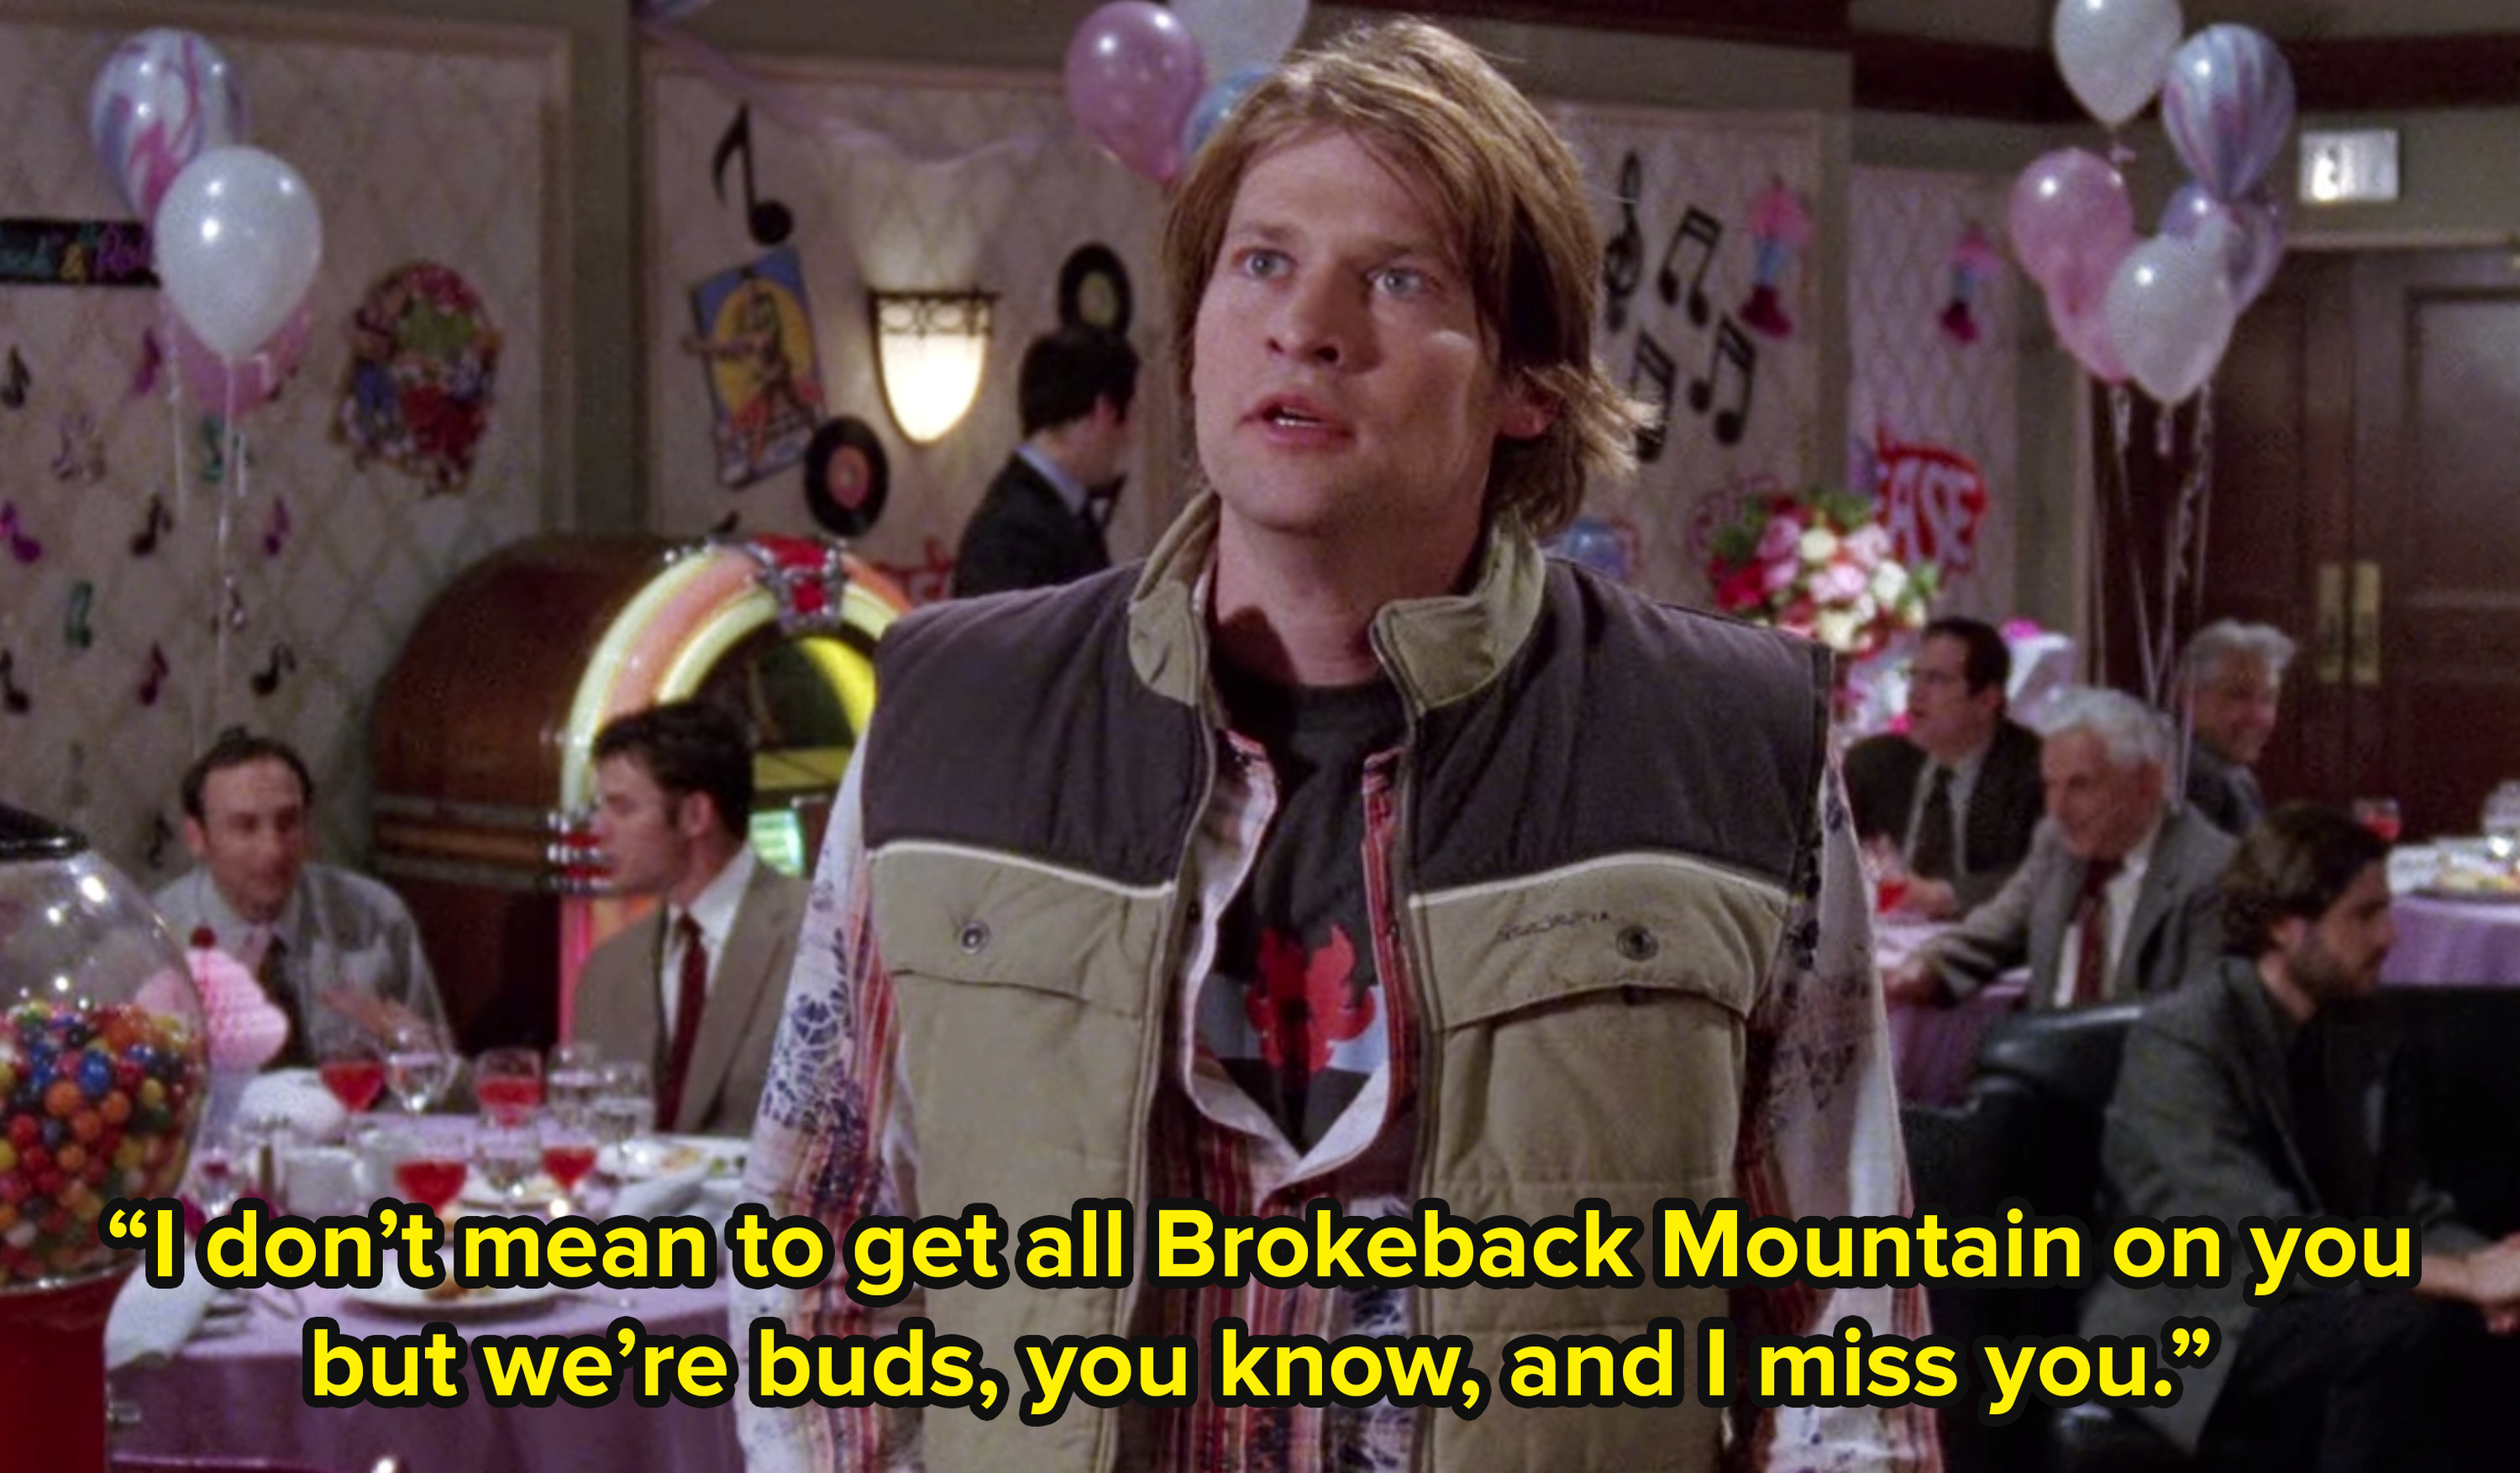 Zach from Gilmore Girls stands in the middle of a dinner function and addresses an unseen figure saying I don't mean to get all Brokeback Mountain on you but we're buds, you know, and I miss you